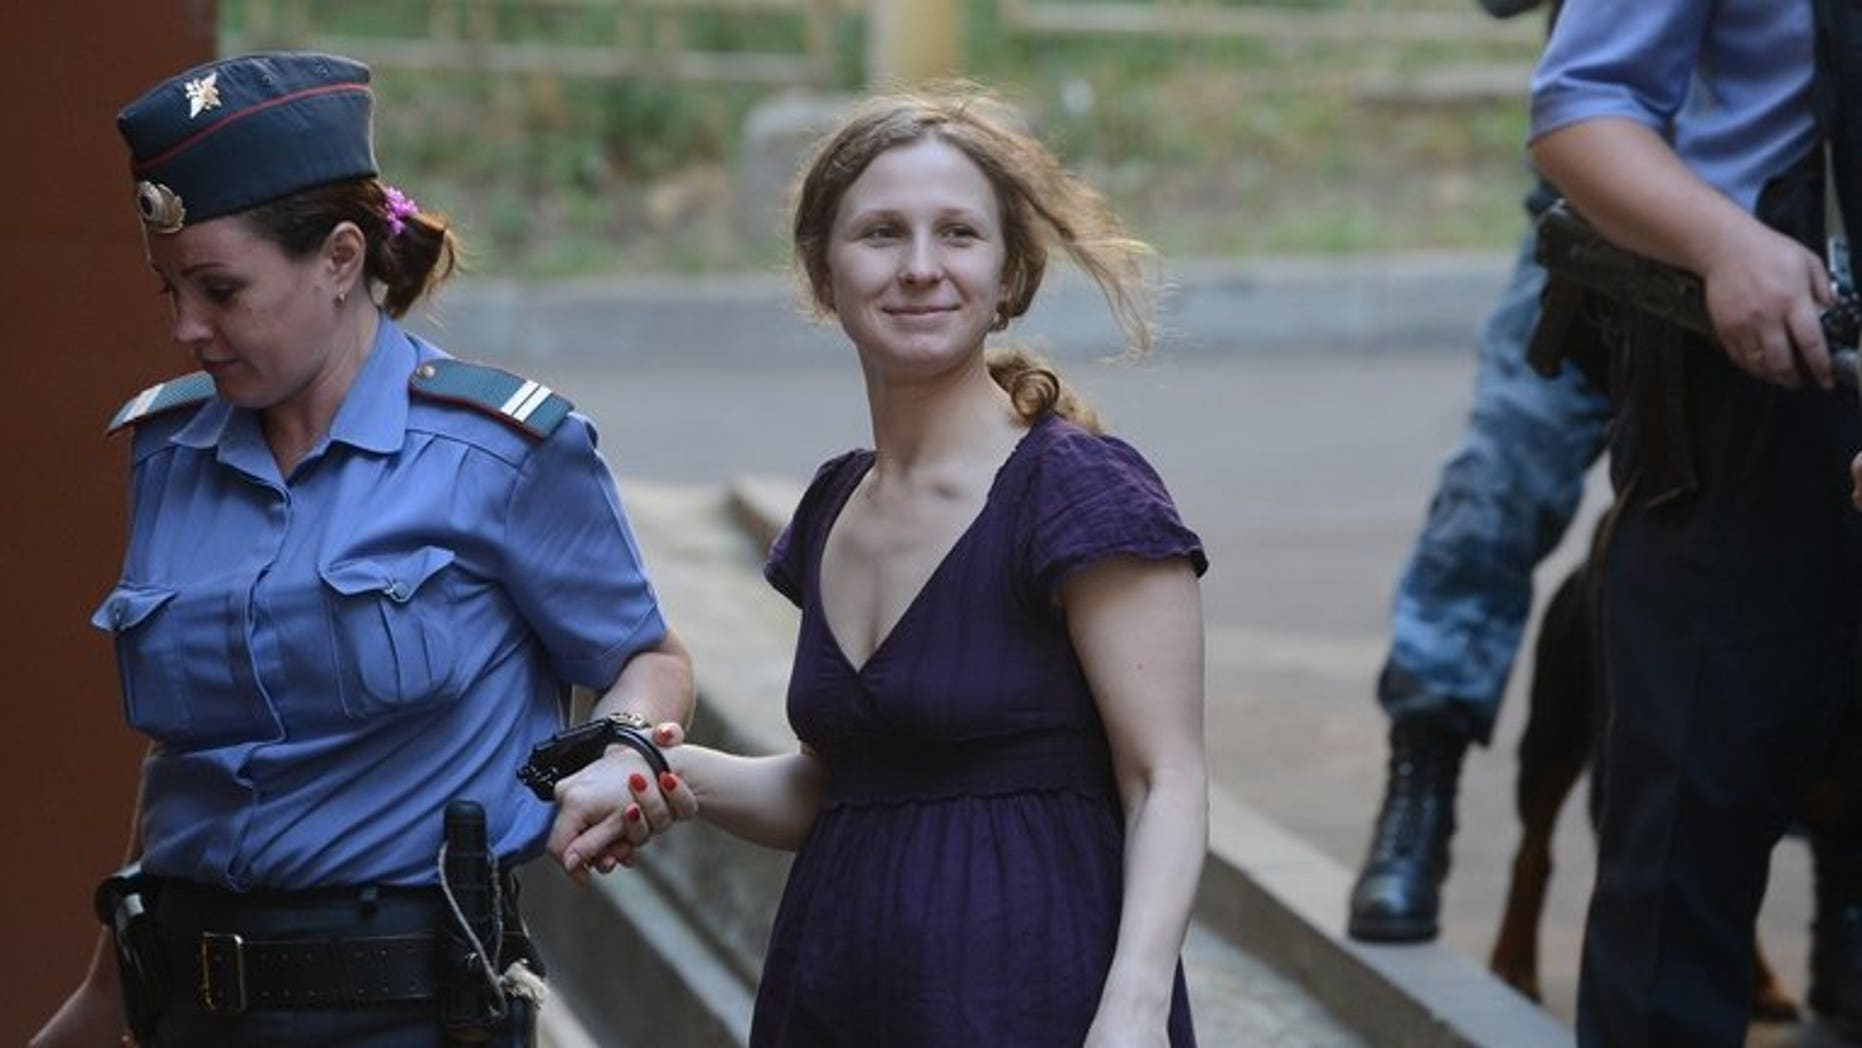 """File picture shows Maria Alyokhina, a member of punk band """"Pussy Riot,"""" being escorted into court in Moscow on August 8, 2012. Alyokhina on Wednesday asked again to be released on parole after serving almost a year in prison for a protest againt President Vladimir Putin in a Moscow church."""